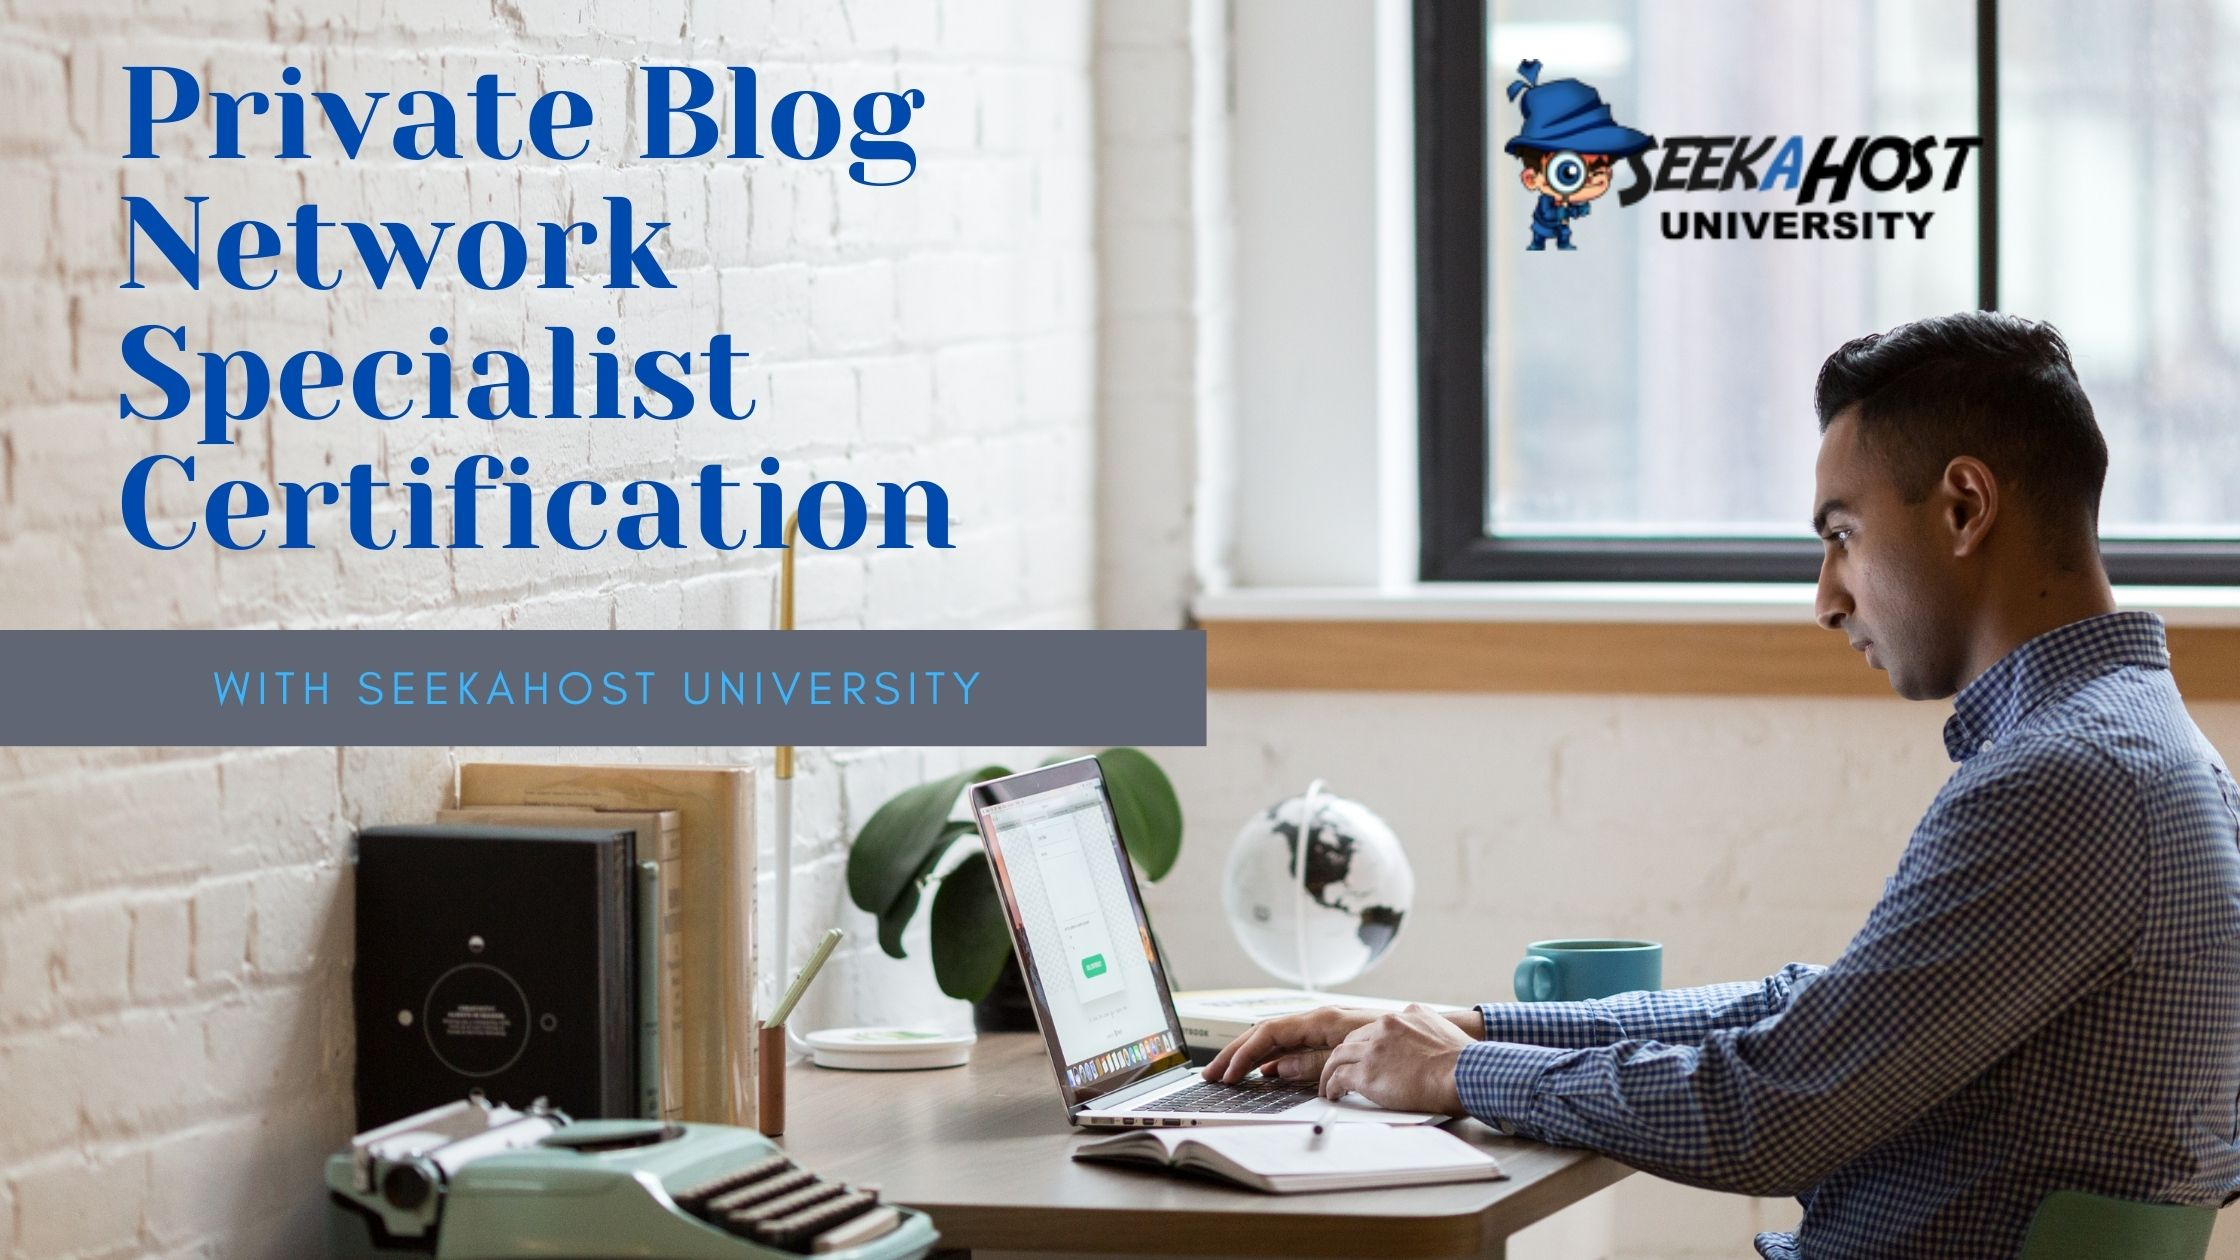 join-seekahost-university-to-get-private-blog-network-specialist-certification